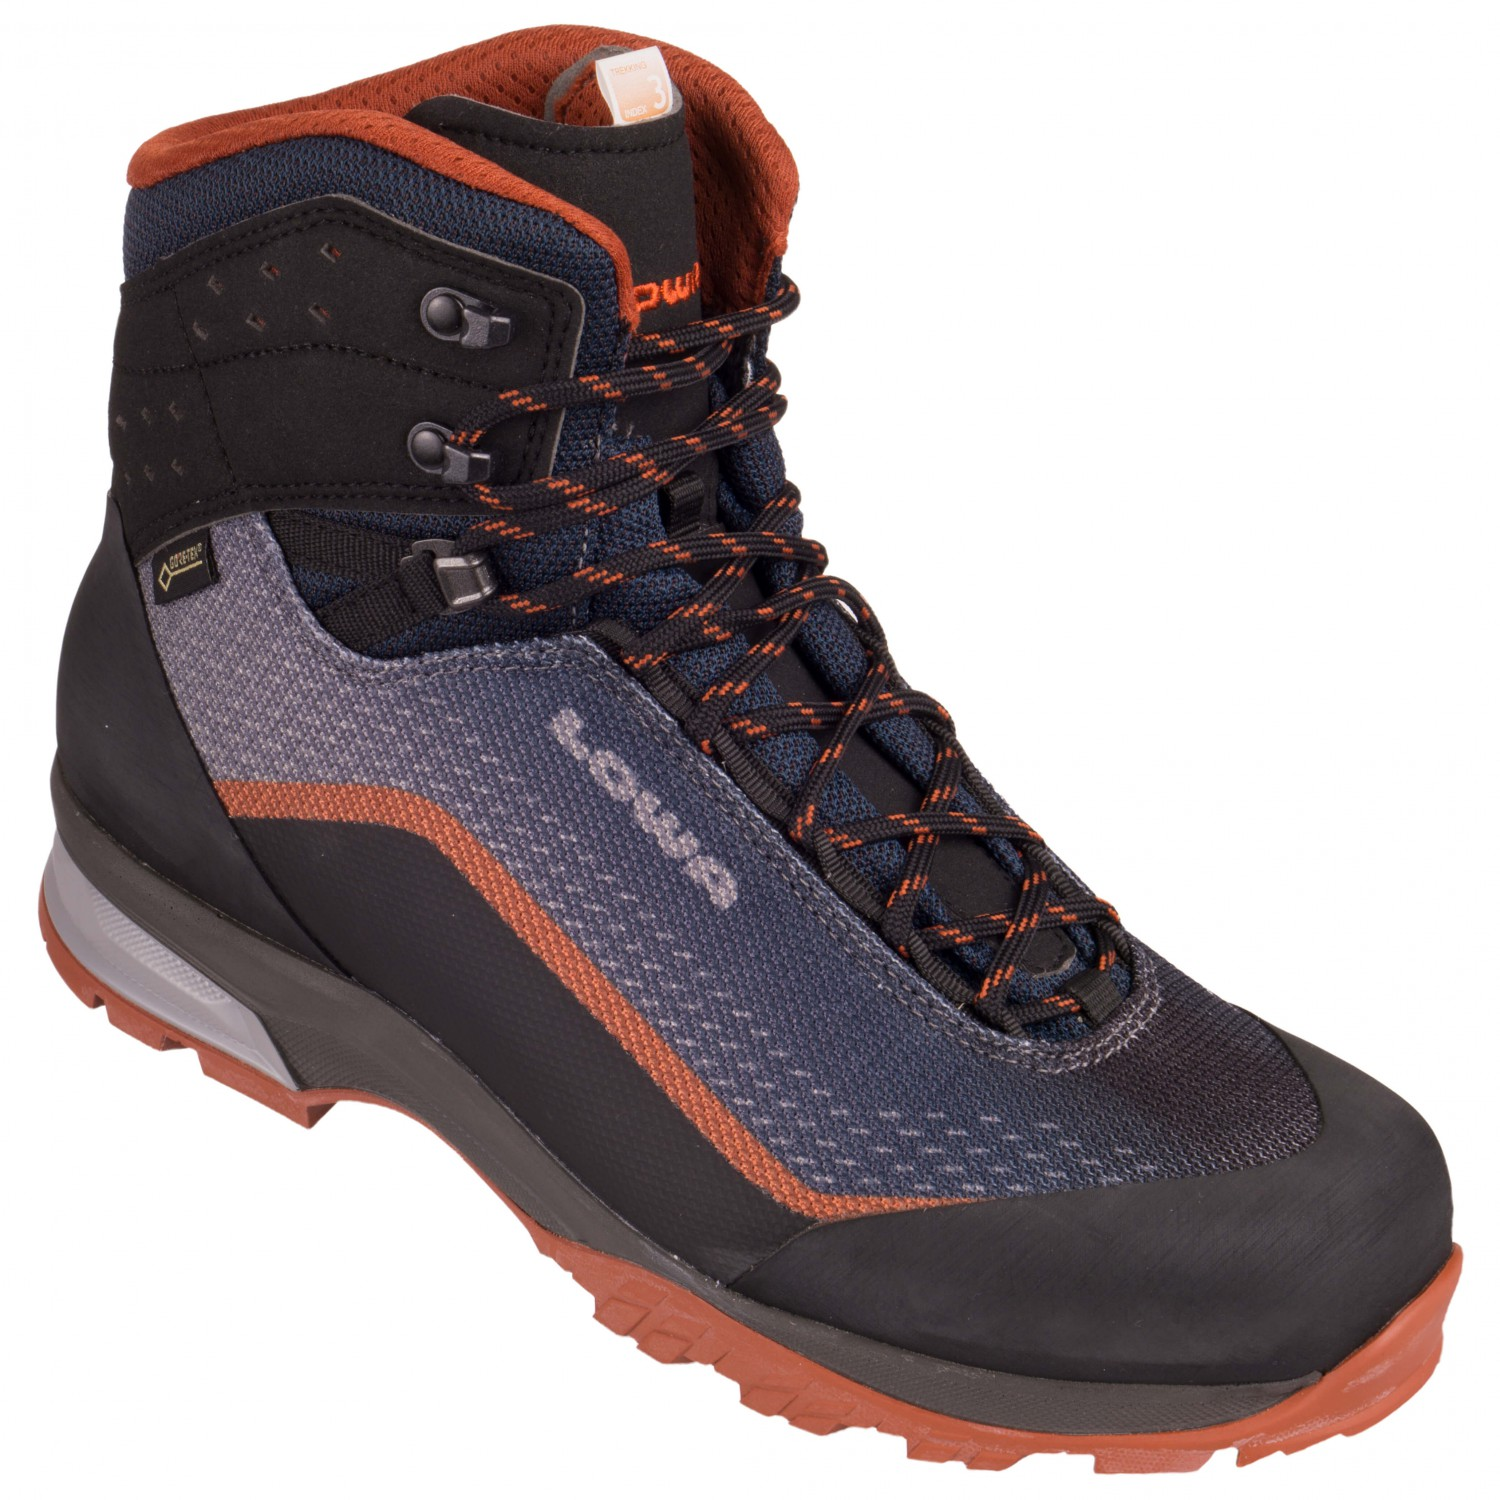 Lowa Irox GTX Mid - Walking Boots Men's | Free UK Delivery